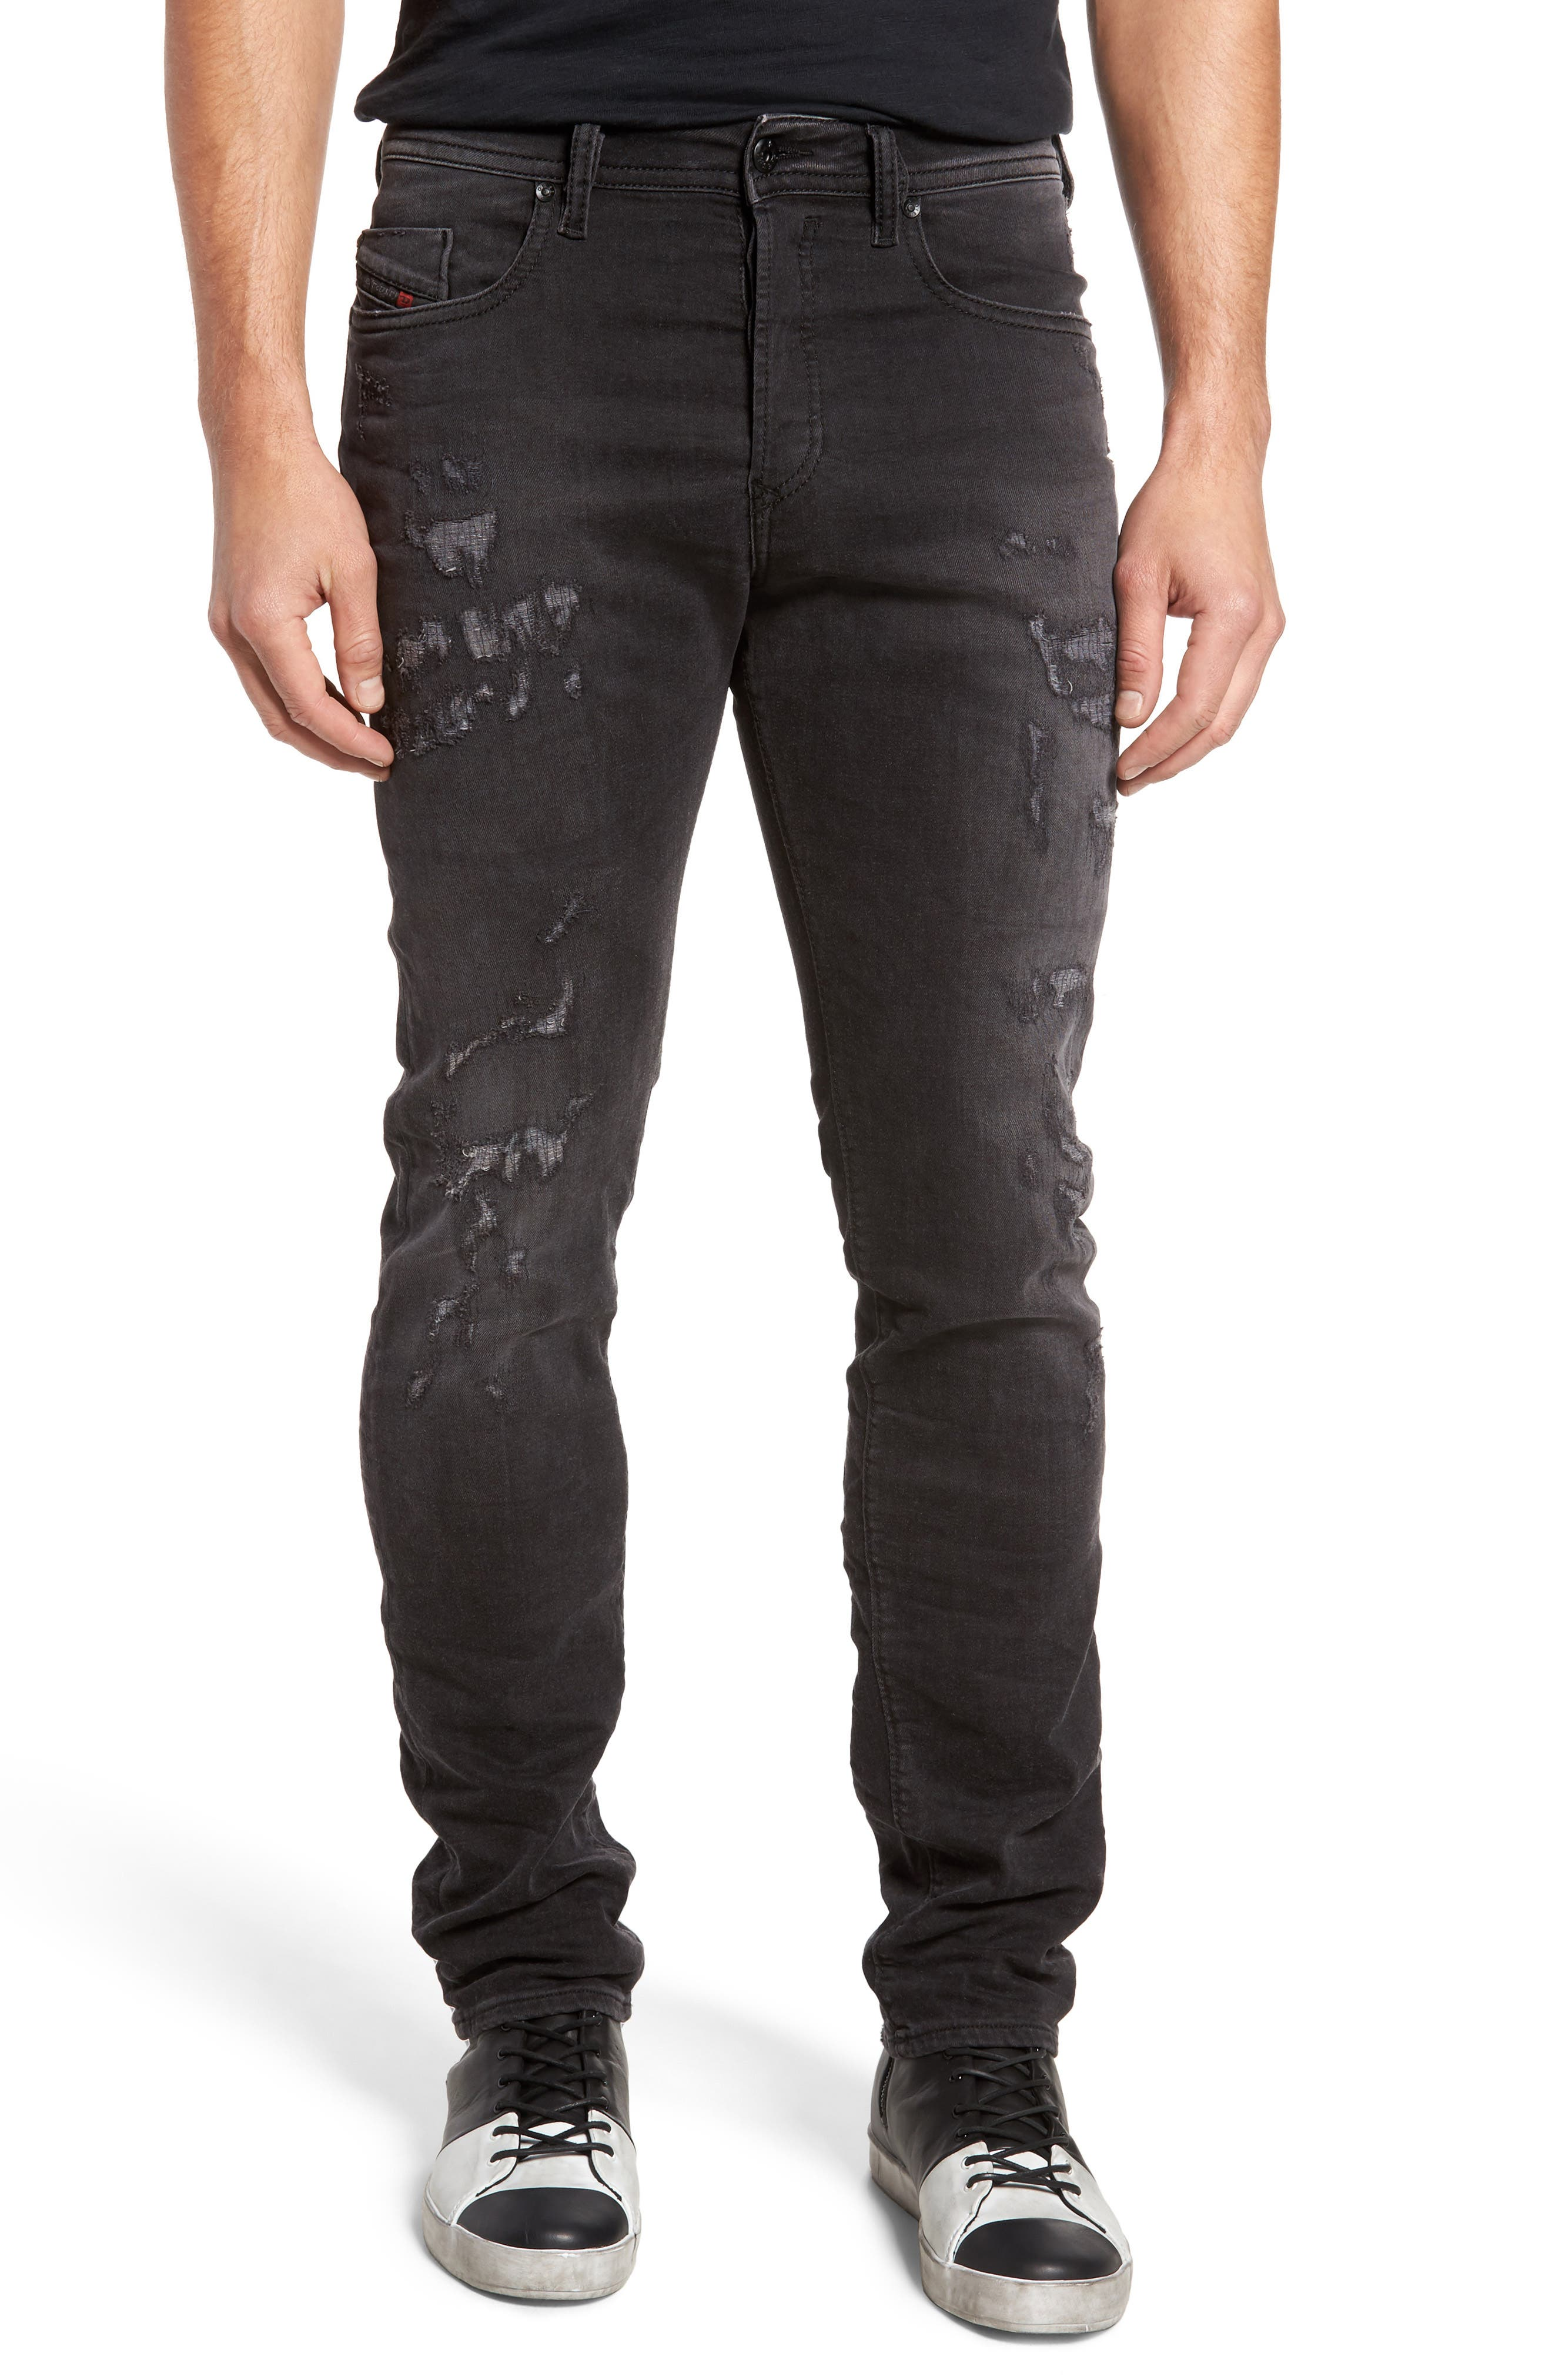 Buster Slim Straight Fit Jeans,                         Main,                         color, 0683P